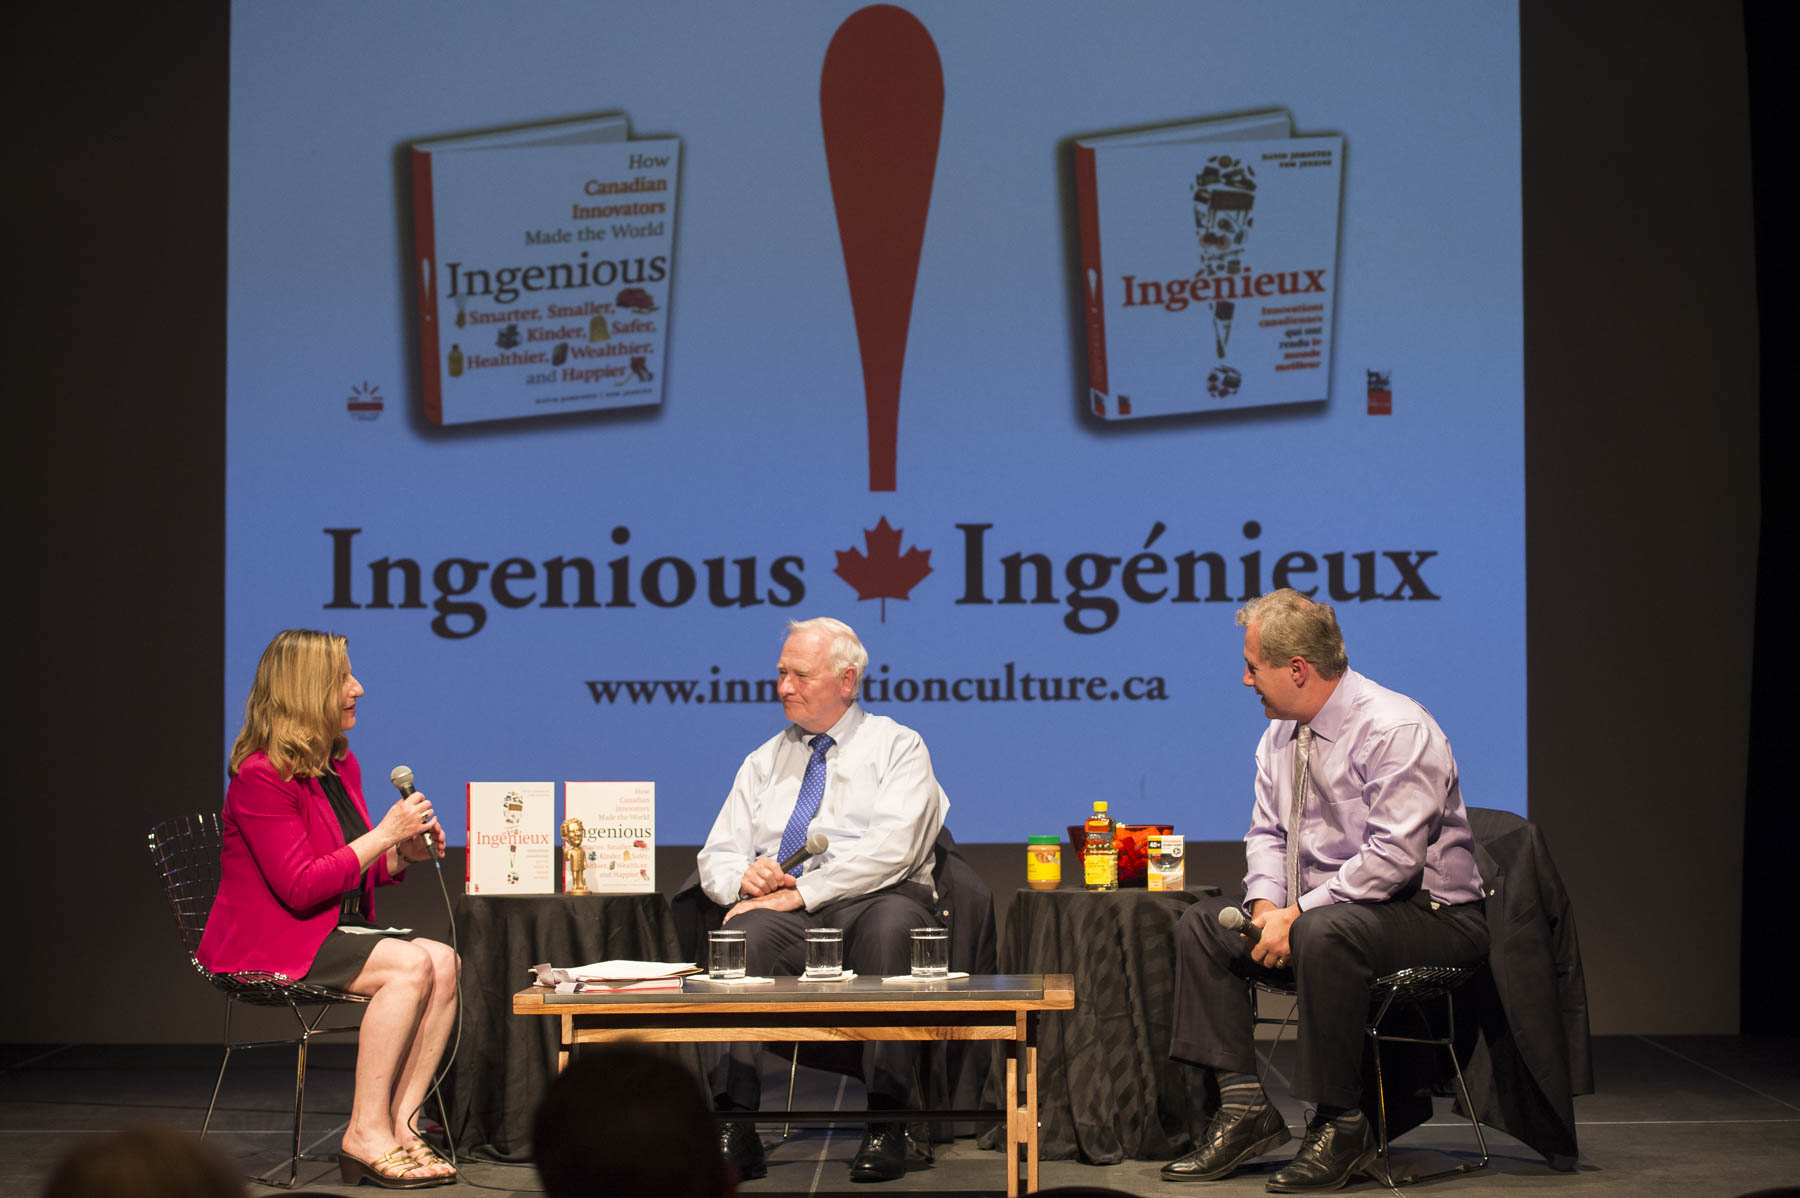 At the end of the day, His Excellency joined Mr. Tom Jenkins, Chair and former CEO of OpenText and Chair of the National Research Council, at an event presented by the Frye Festival where they discussed their recently published book, Ingenious.